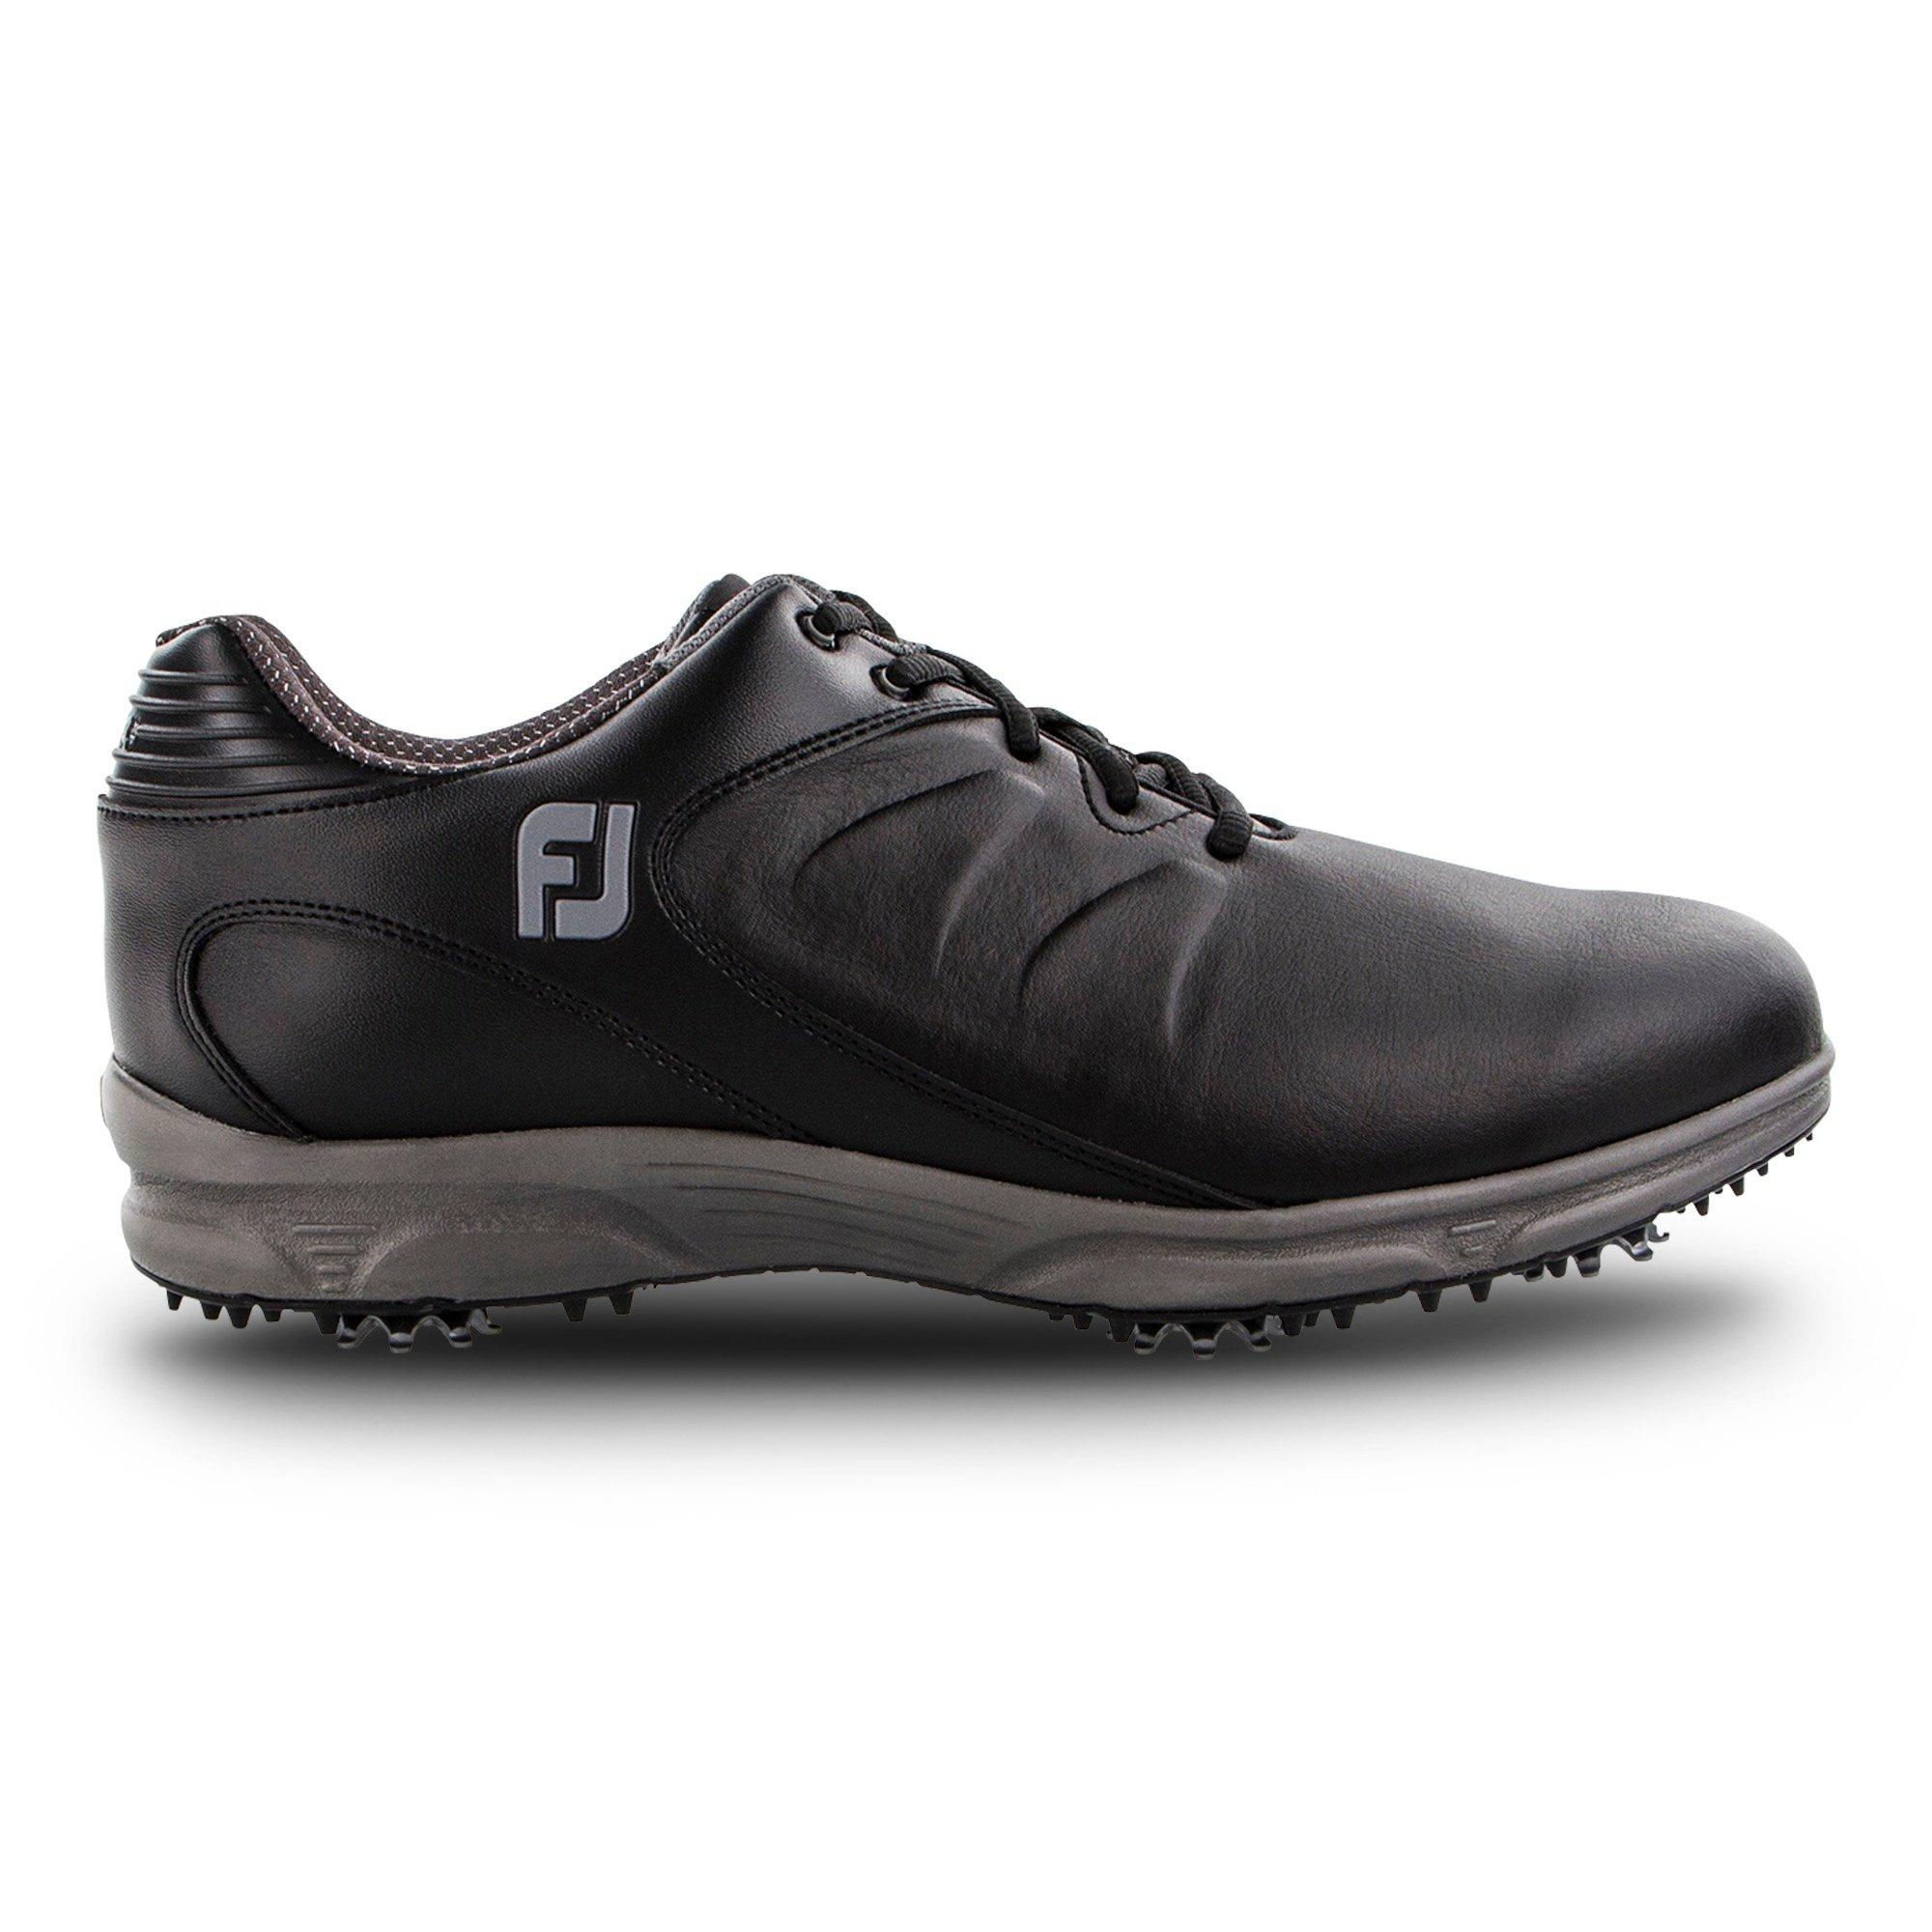 Men's Arc XT Spiked Golf Shoe - BLACK